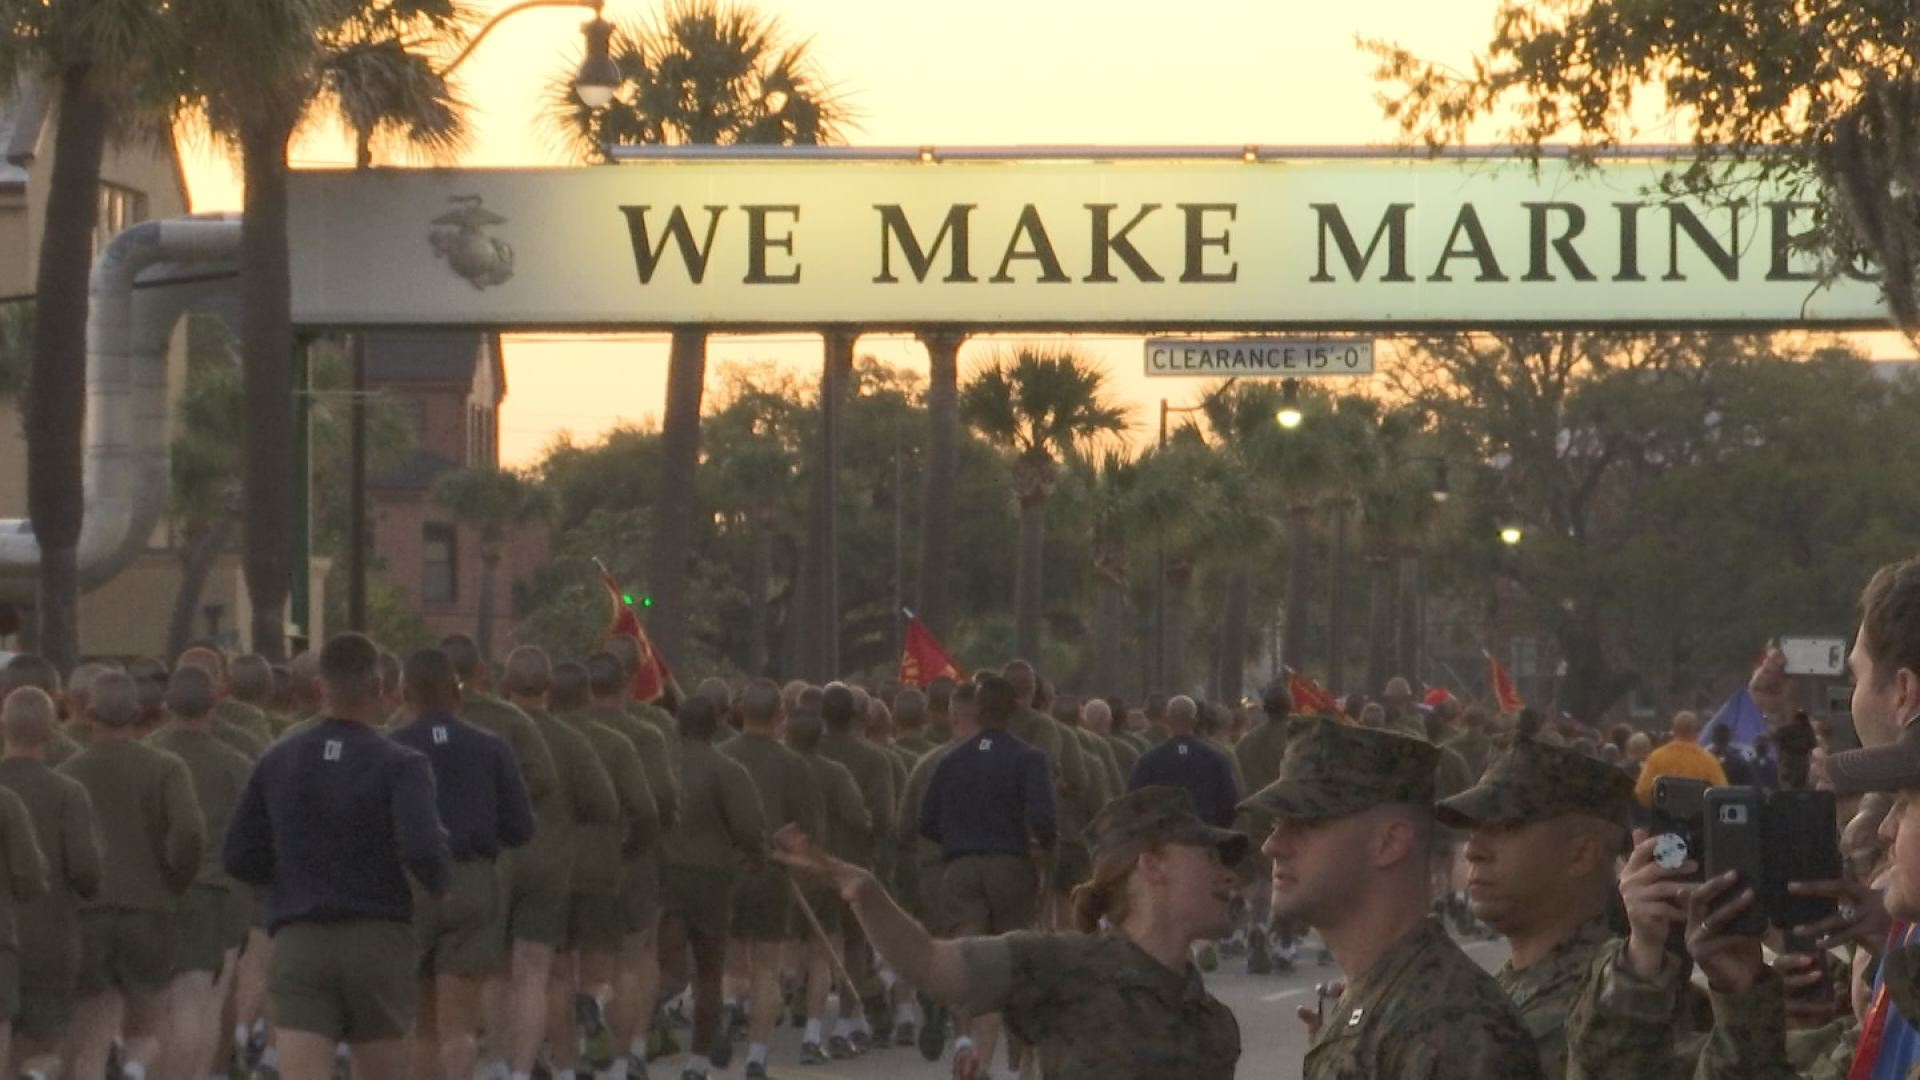 Marine Corps Educator Workshop: A day in the life as a